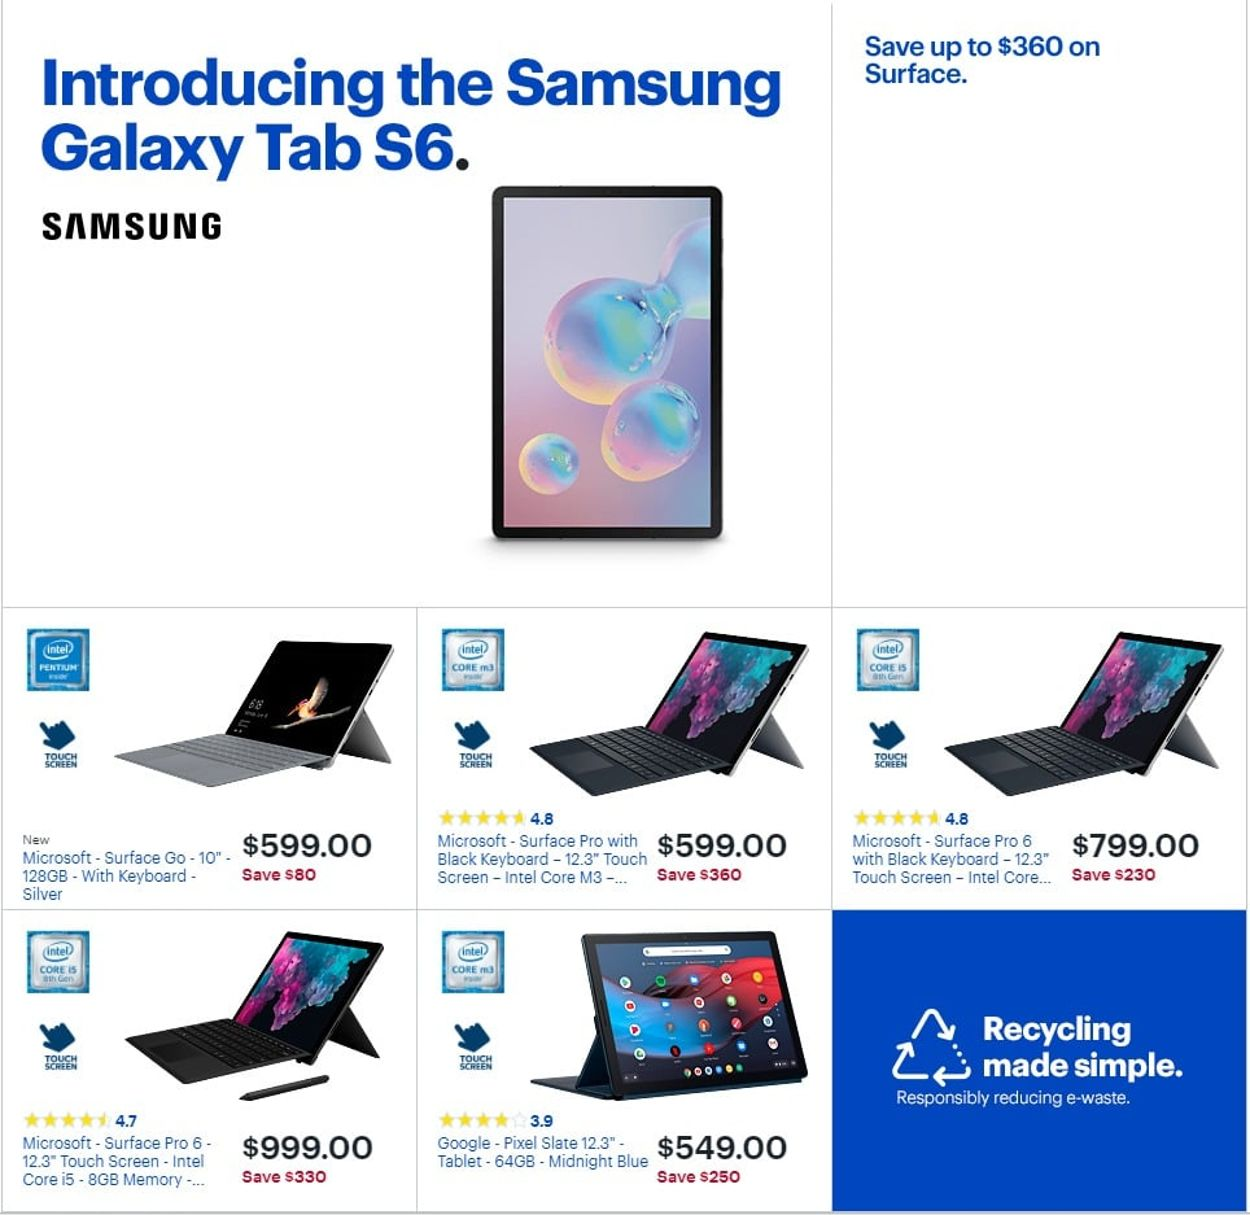 Best Buy Current weekly ad 08/04 - 08/10/2019 [5] - frequent